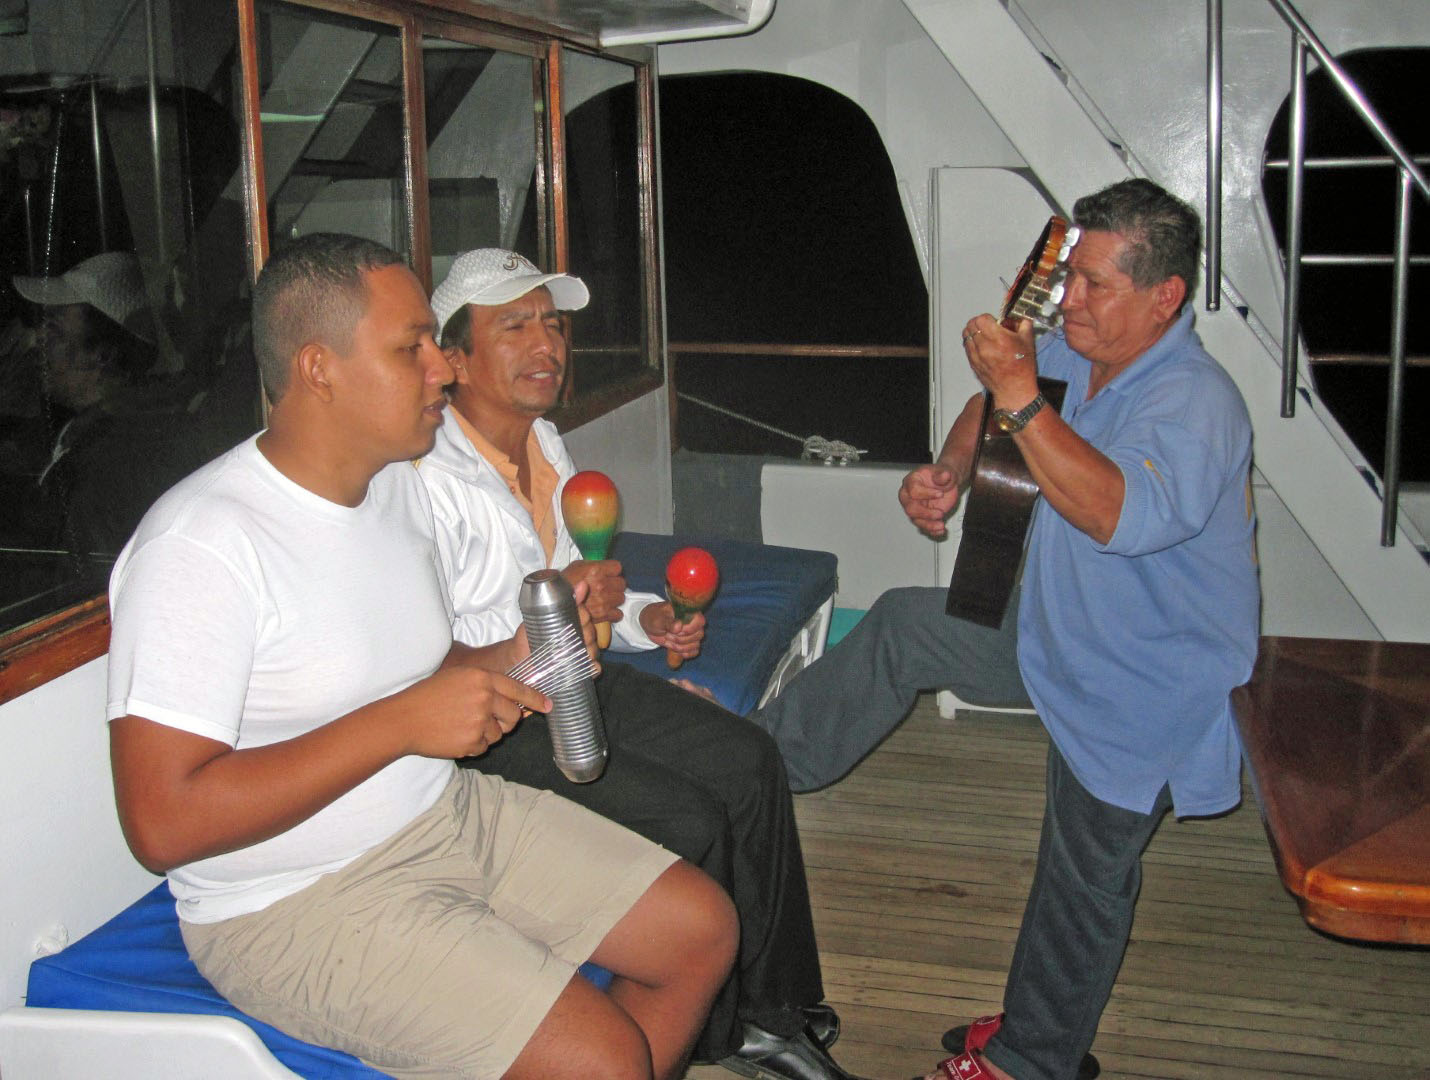 Men playing musical instruments